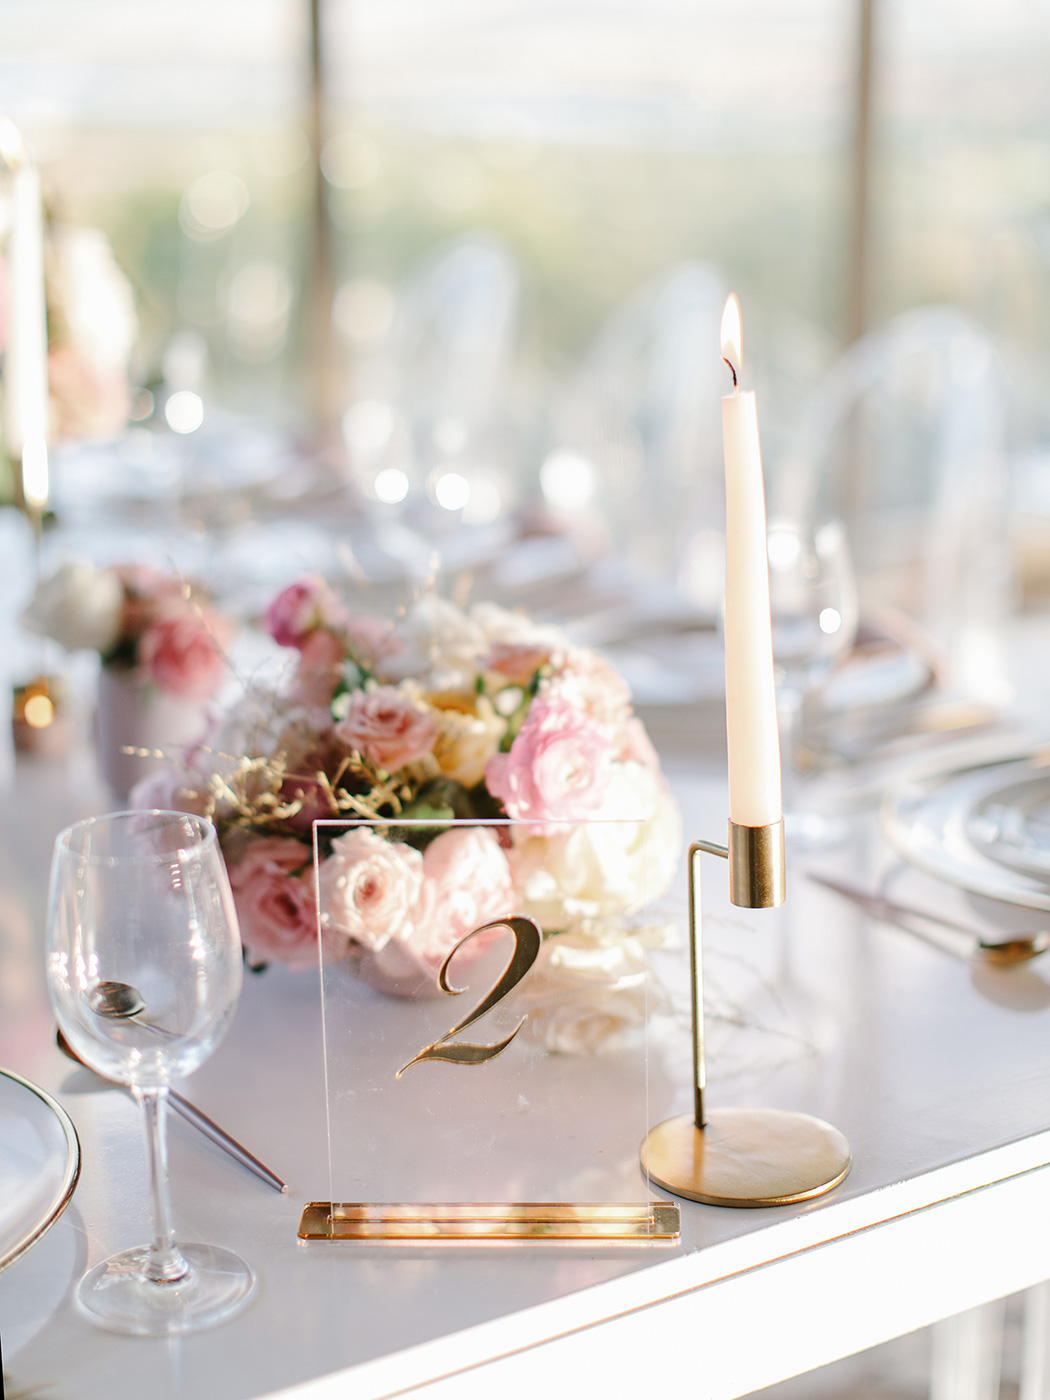 Infinite Luxe Weddings | Rensche Mari Photography